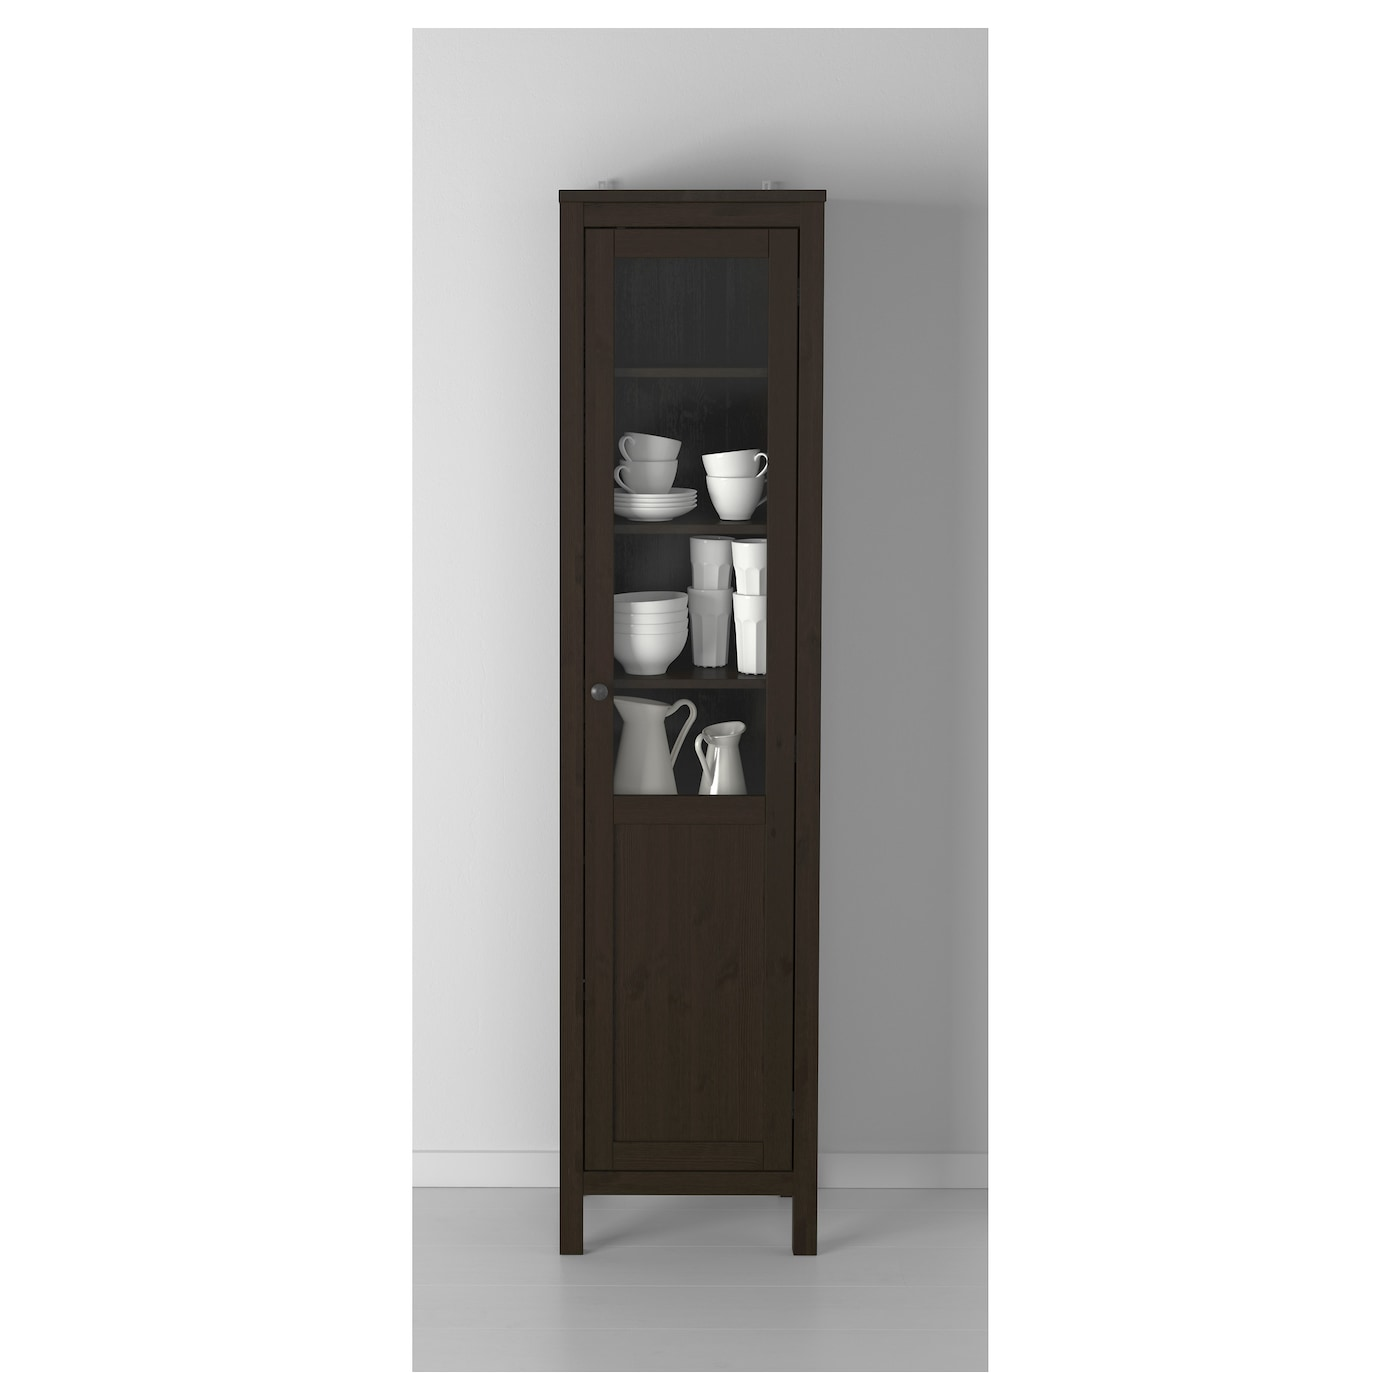 Hemnes cabinet with panel glass door black brown 49x197 cm - Ikea glass cabinets ...